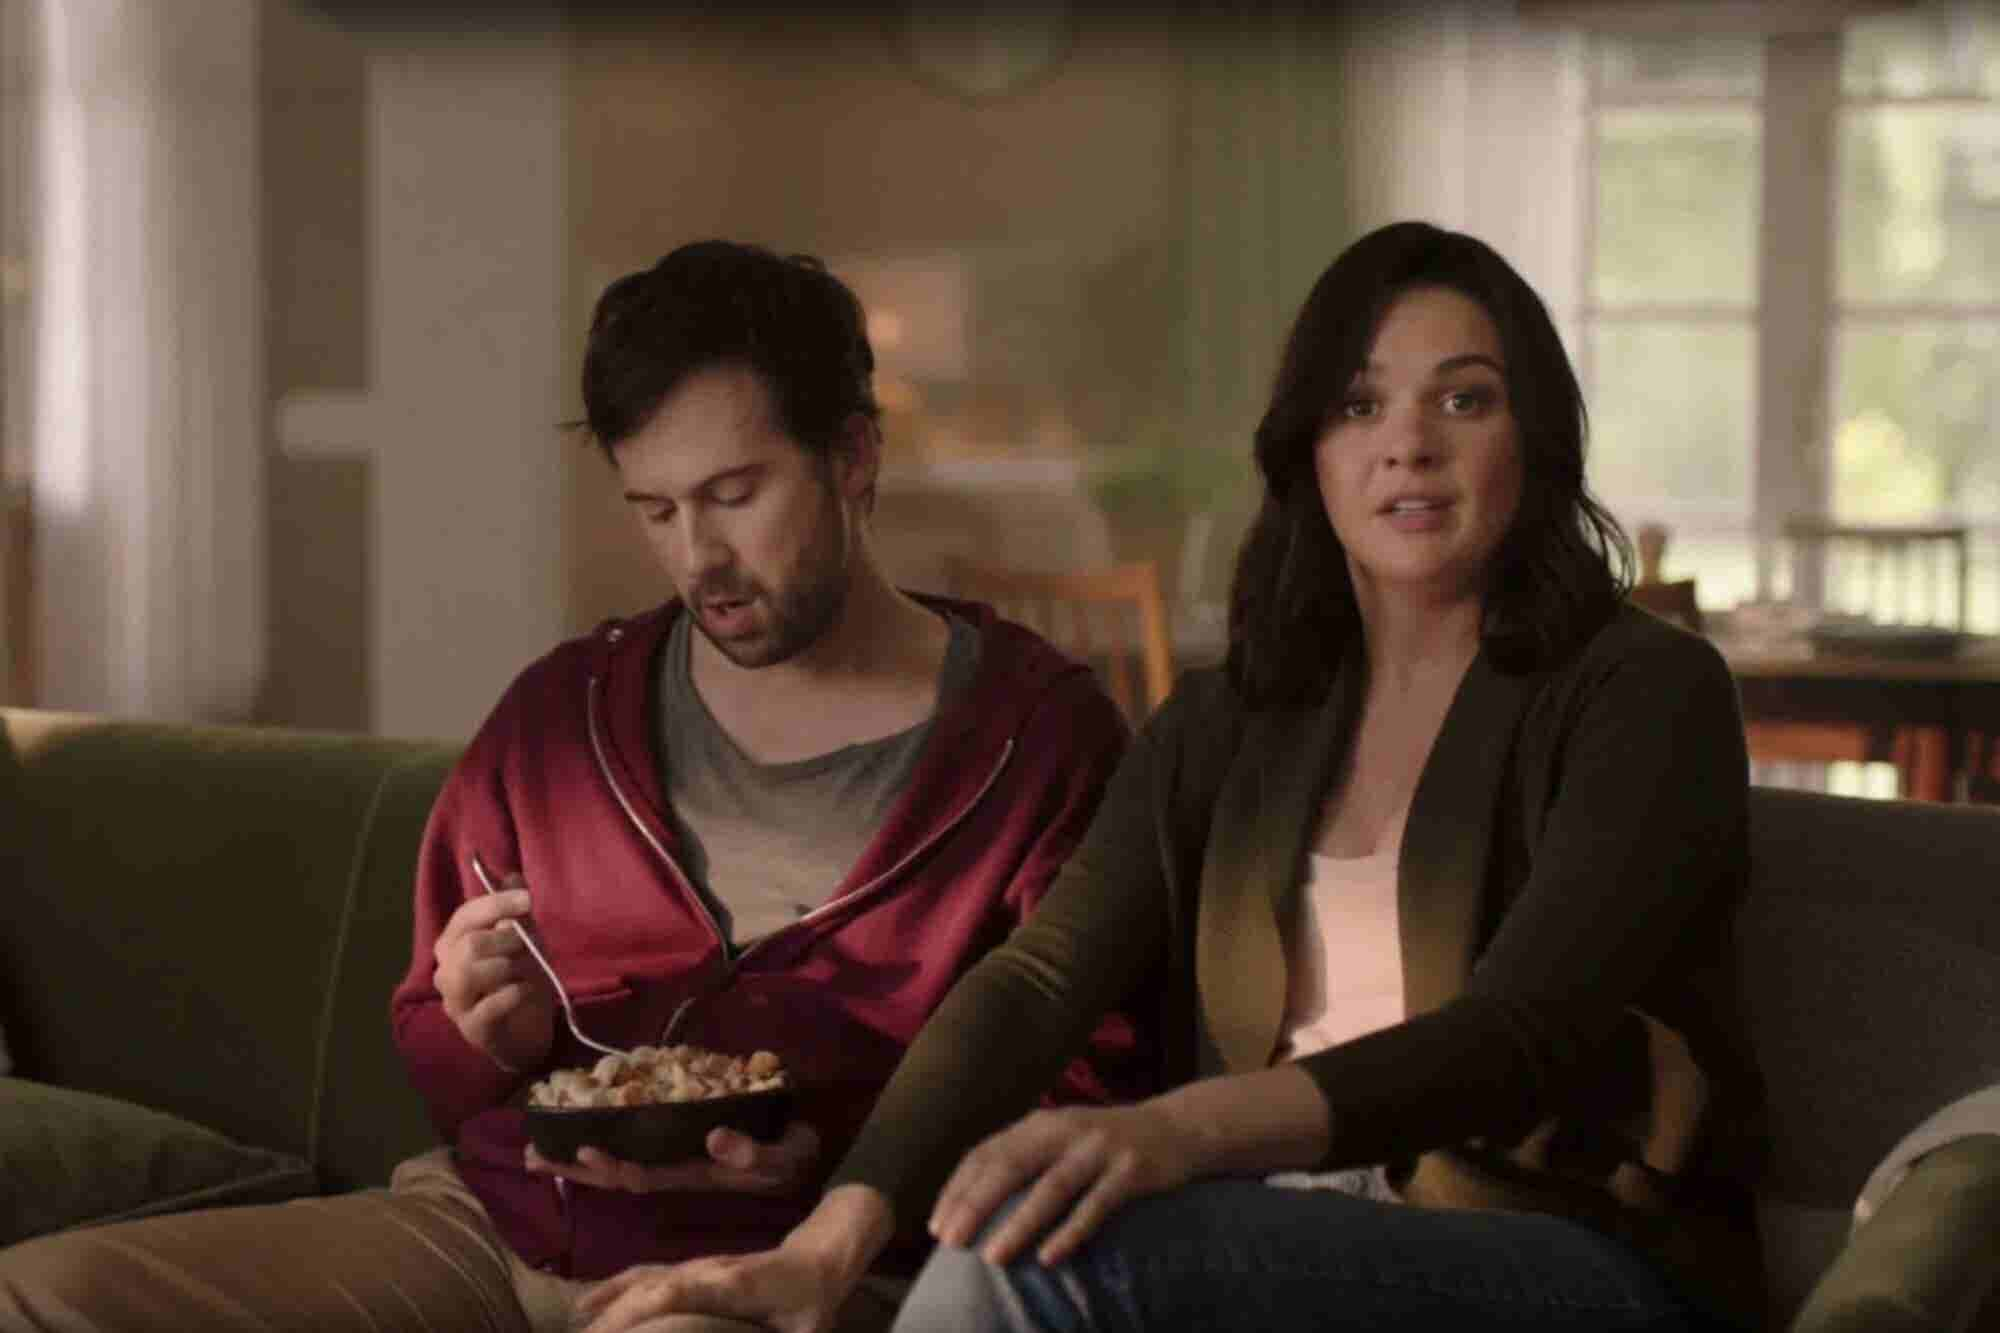 This Suggestive Super Bowl Commercial Takes 'Food Porn' to a New Level